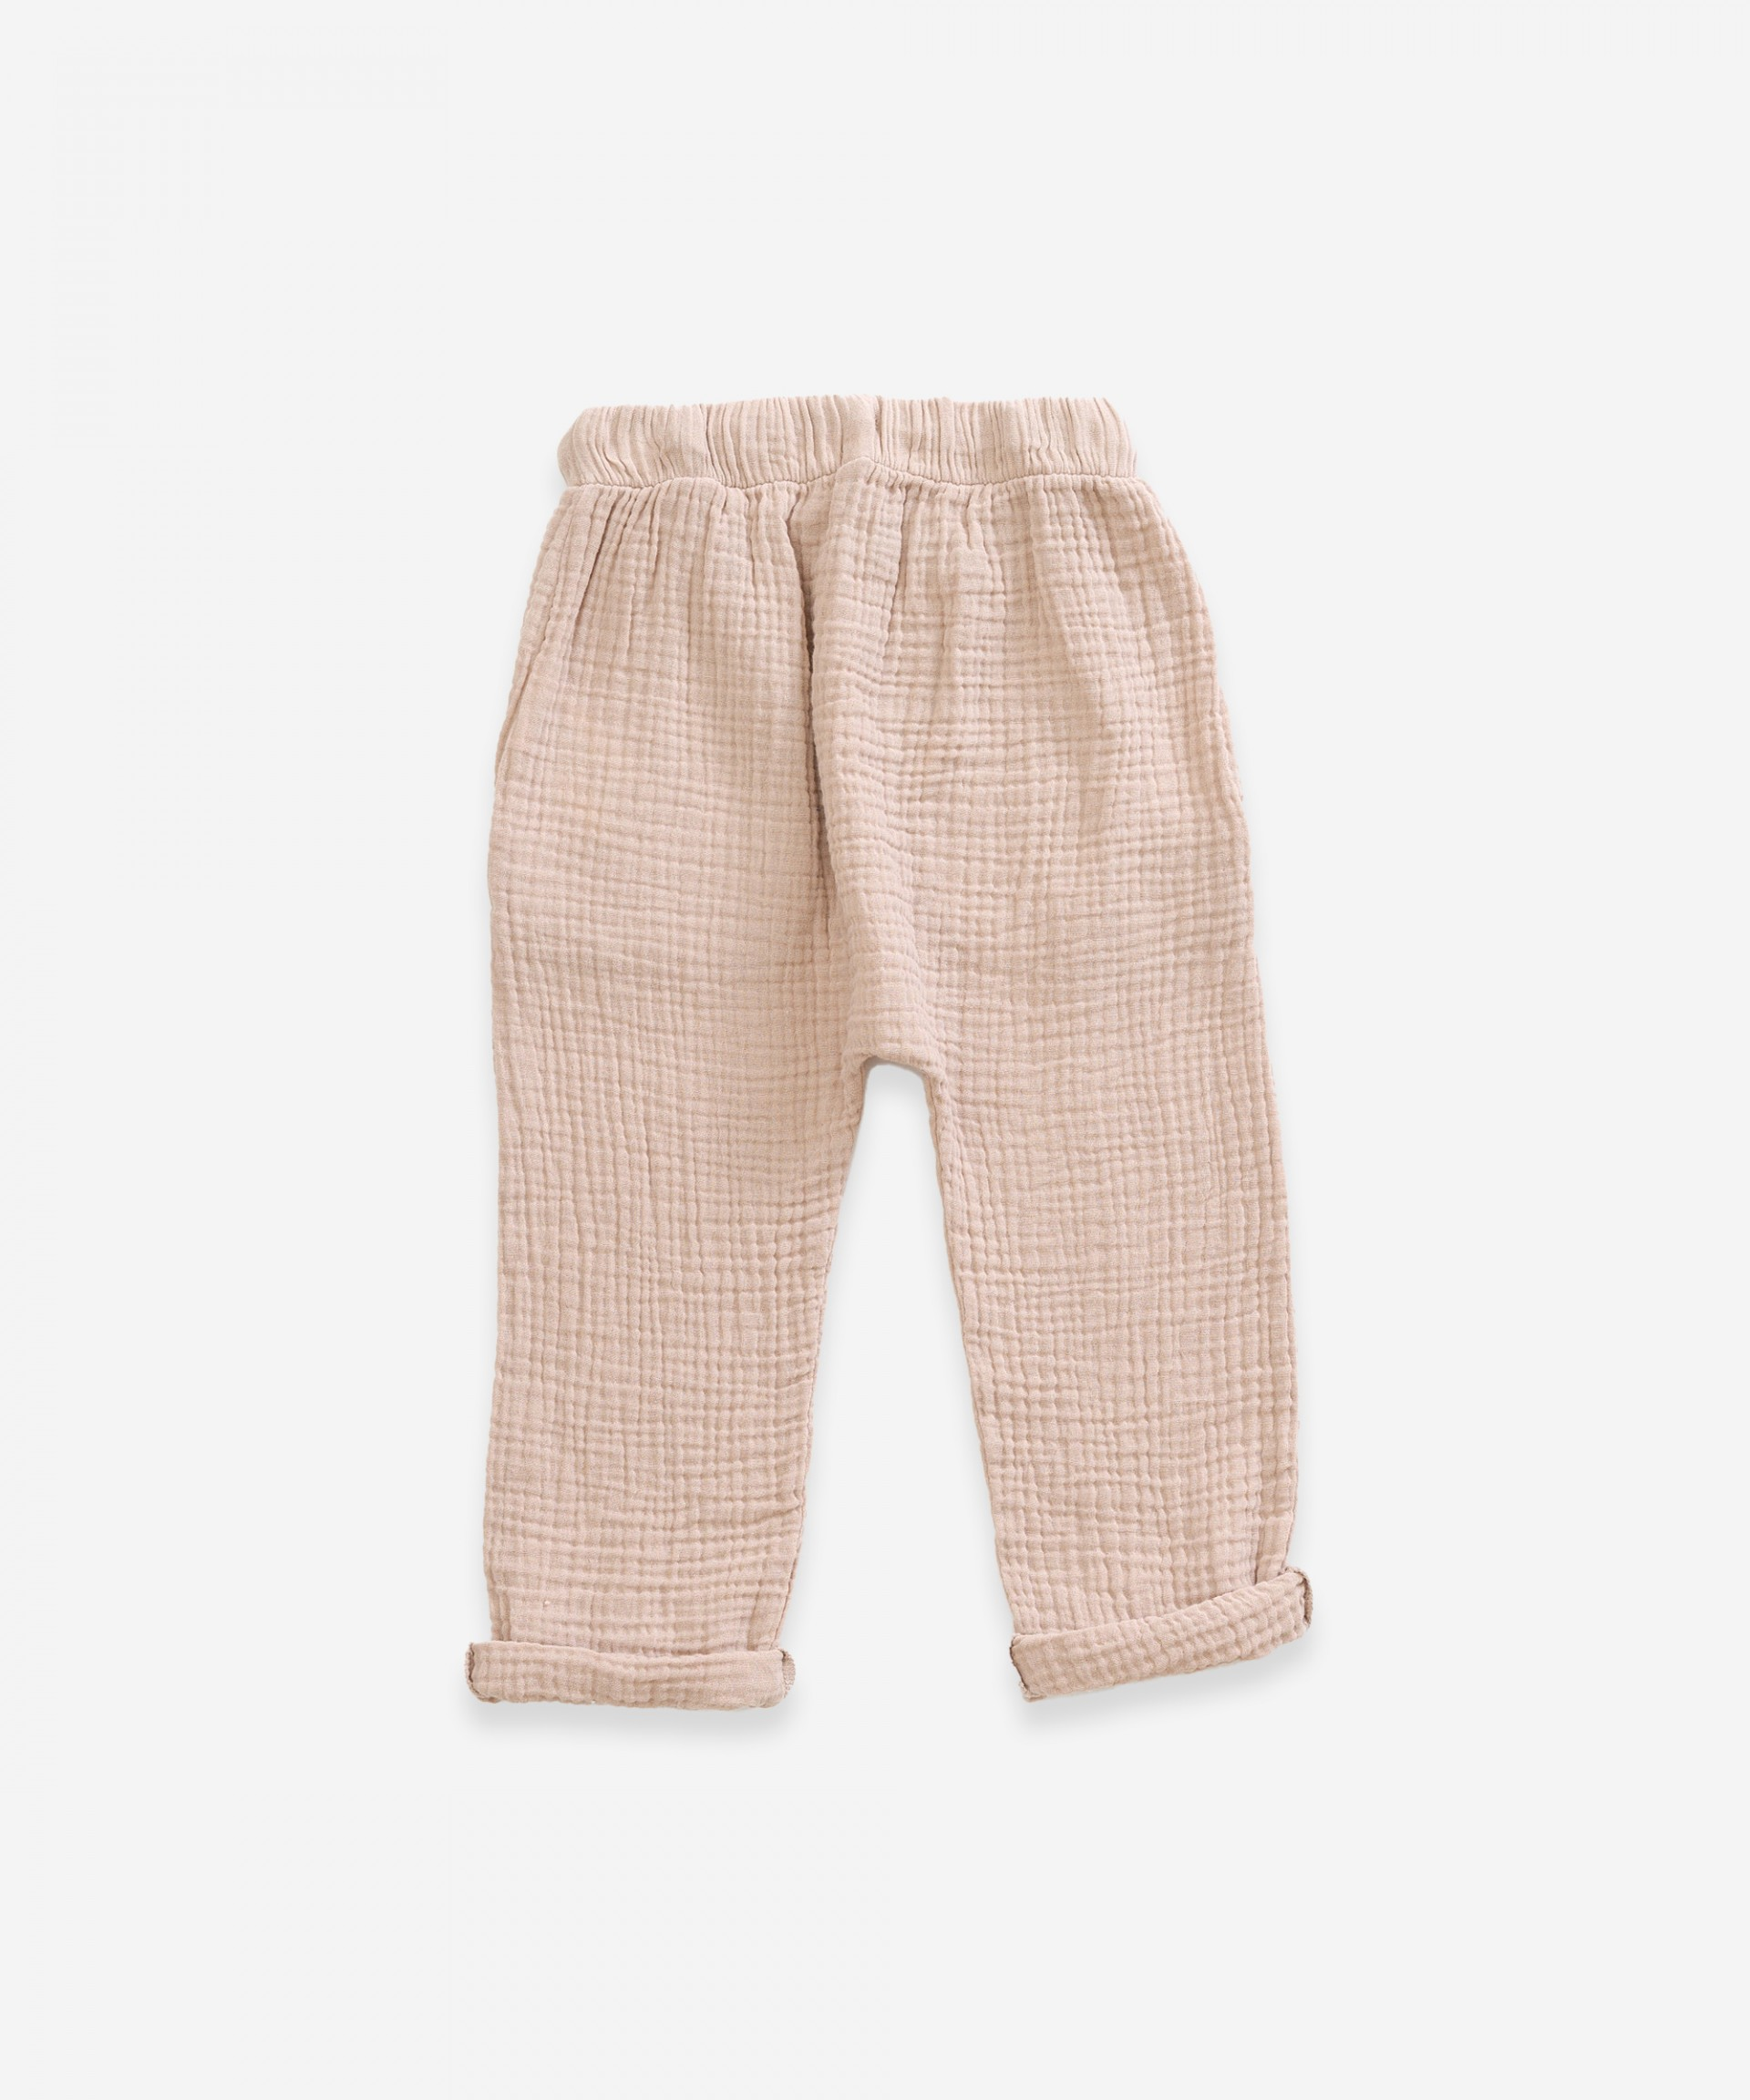 Trousers in organic cotton with pockets | Weaving